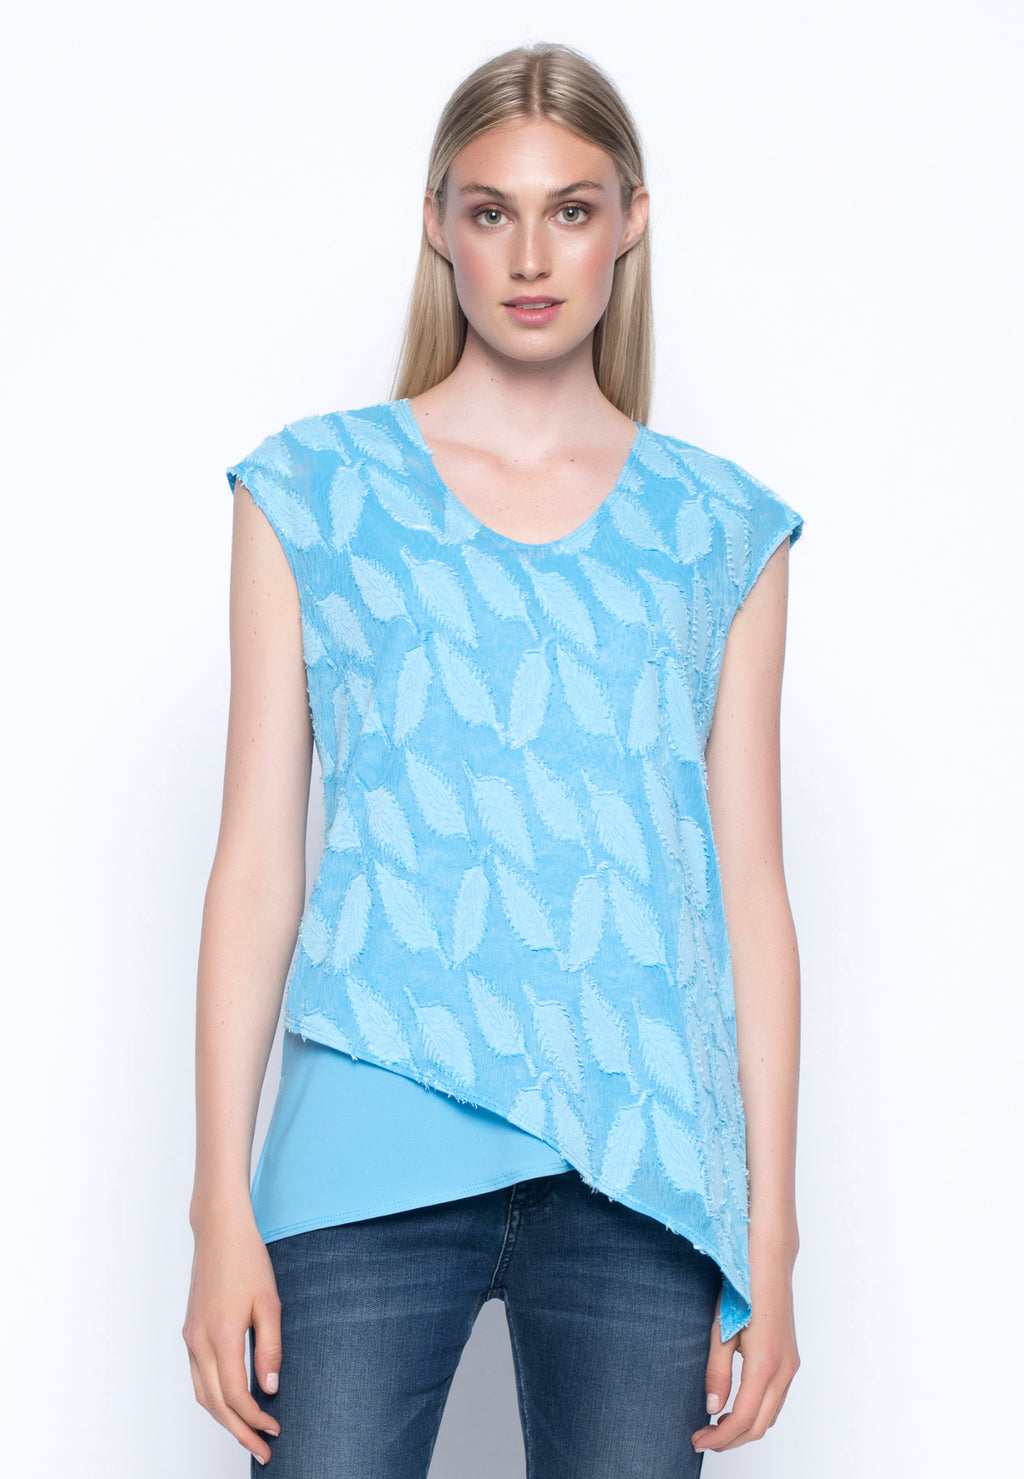 Asymmetric Top and Tank